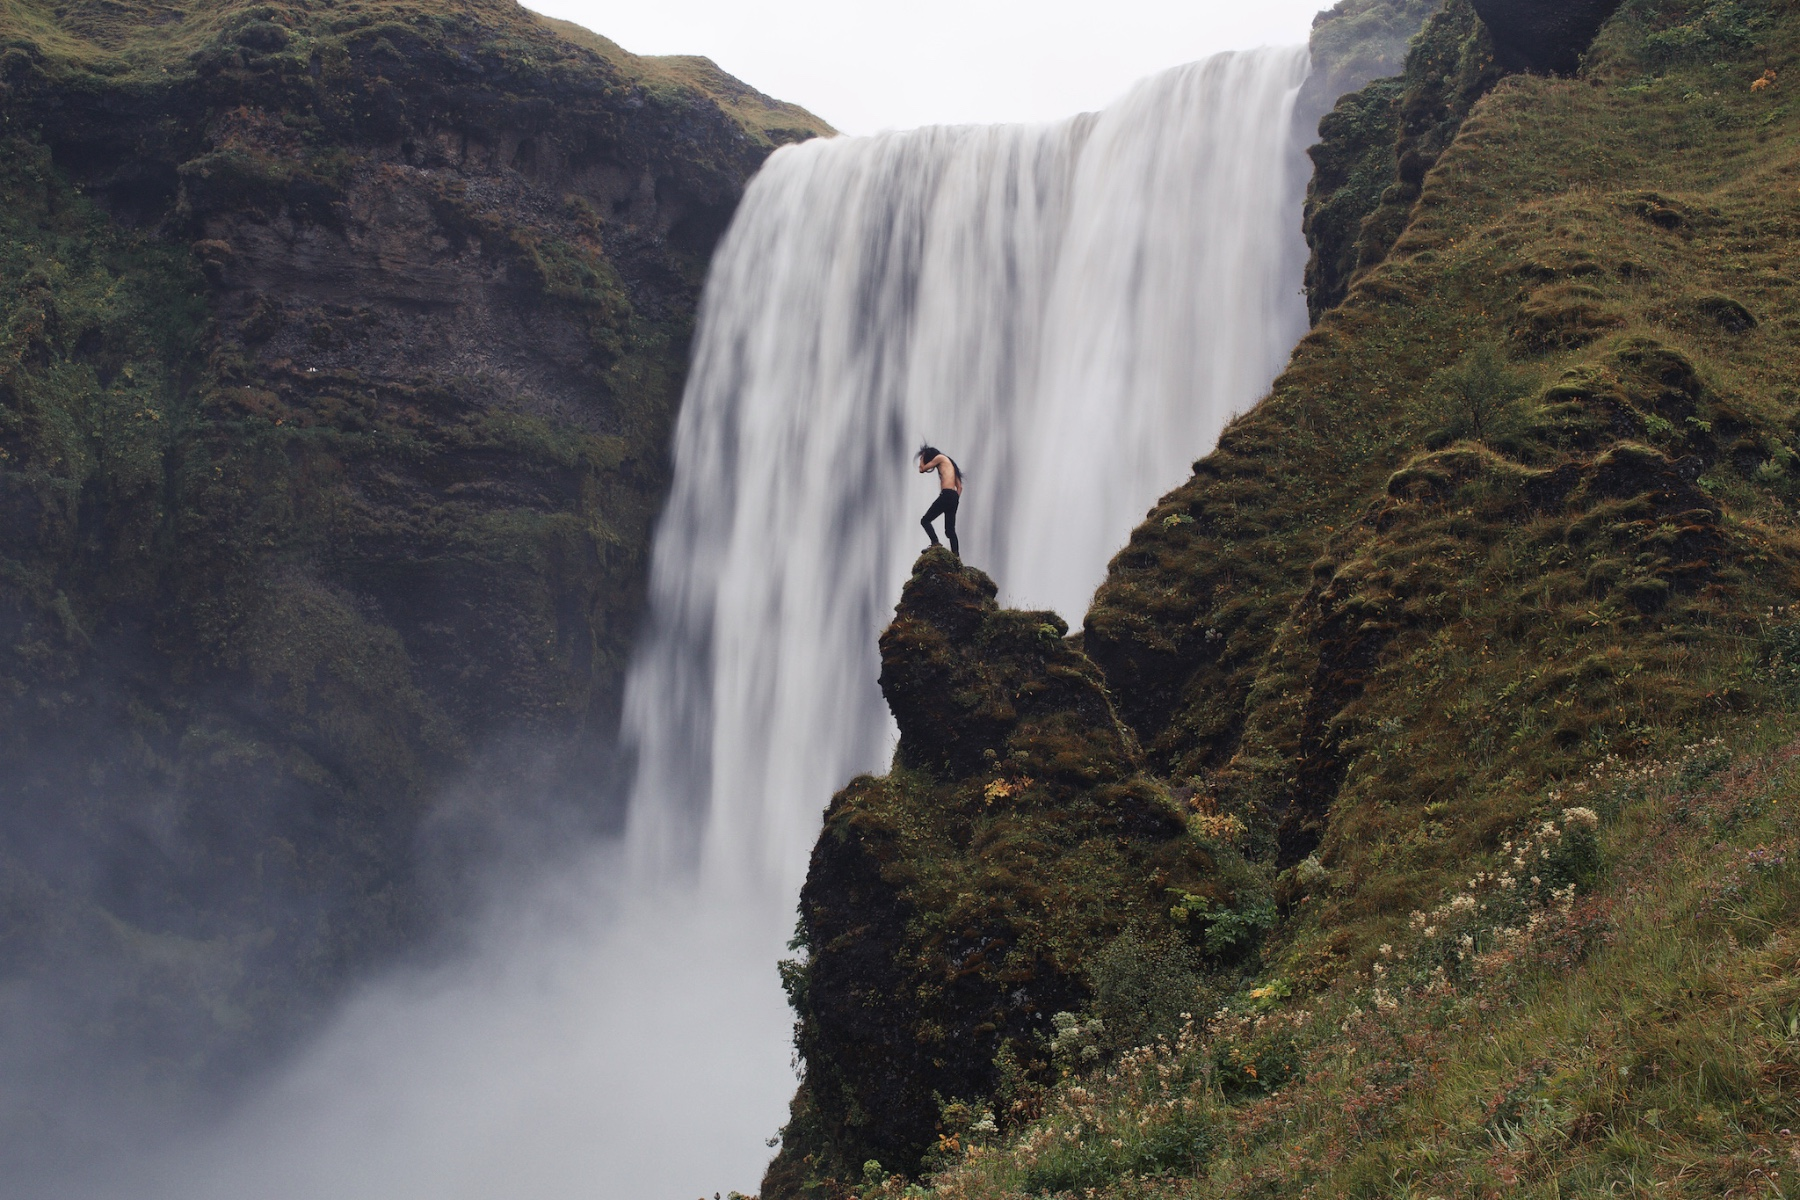 Brilliant Self-Portraits Add a Human Touch to Iceland's Epic Landscapes